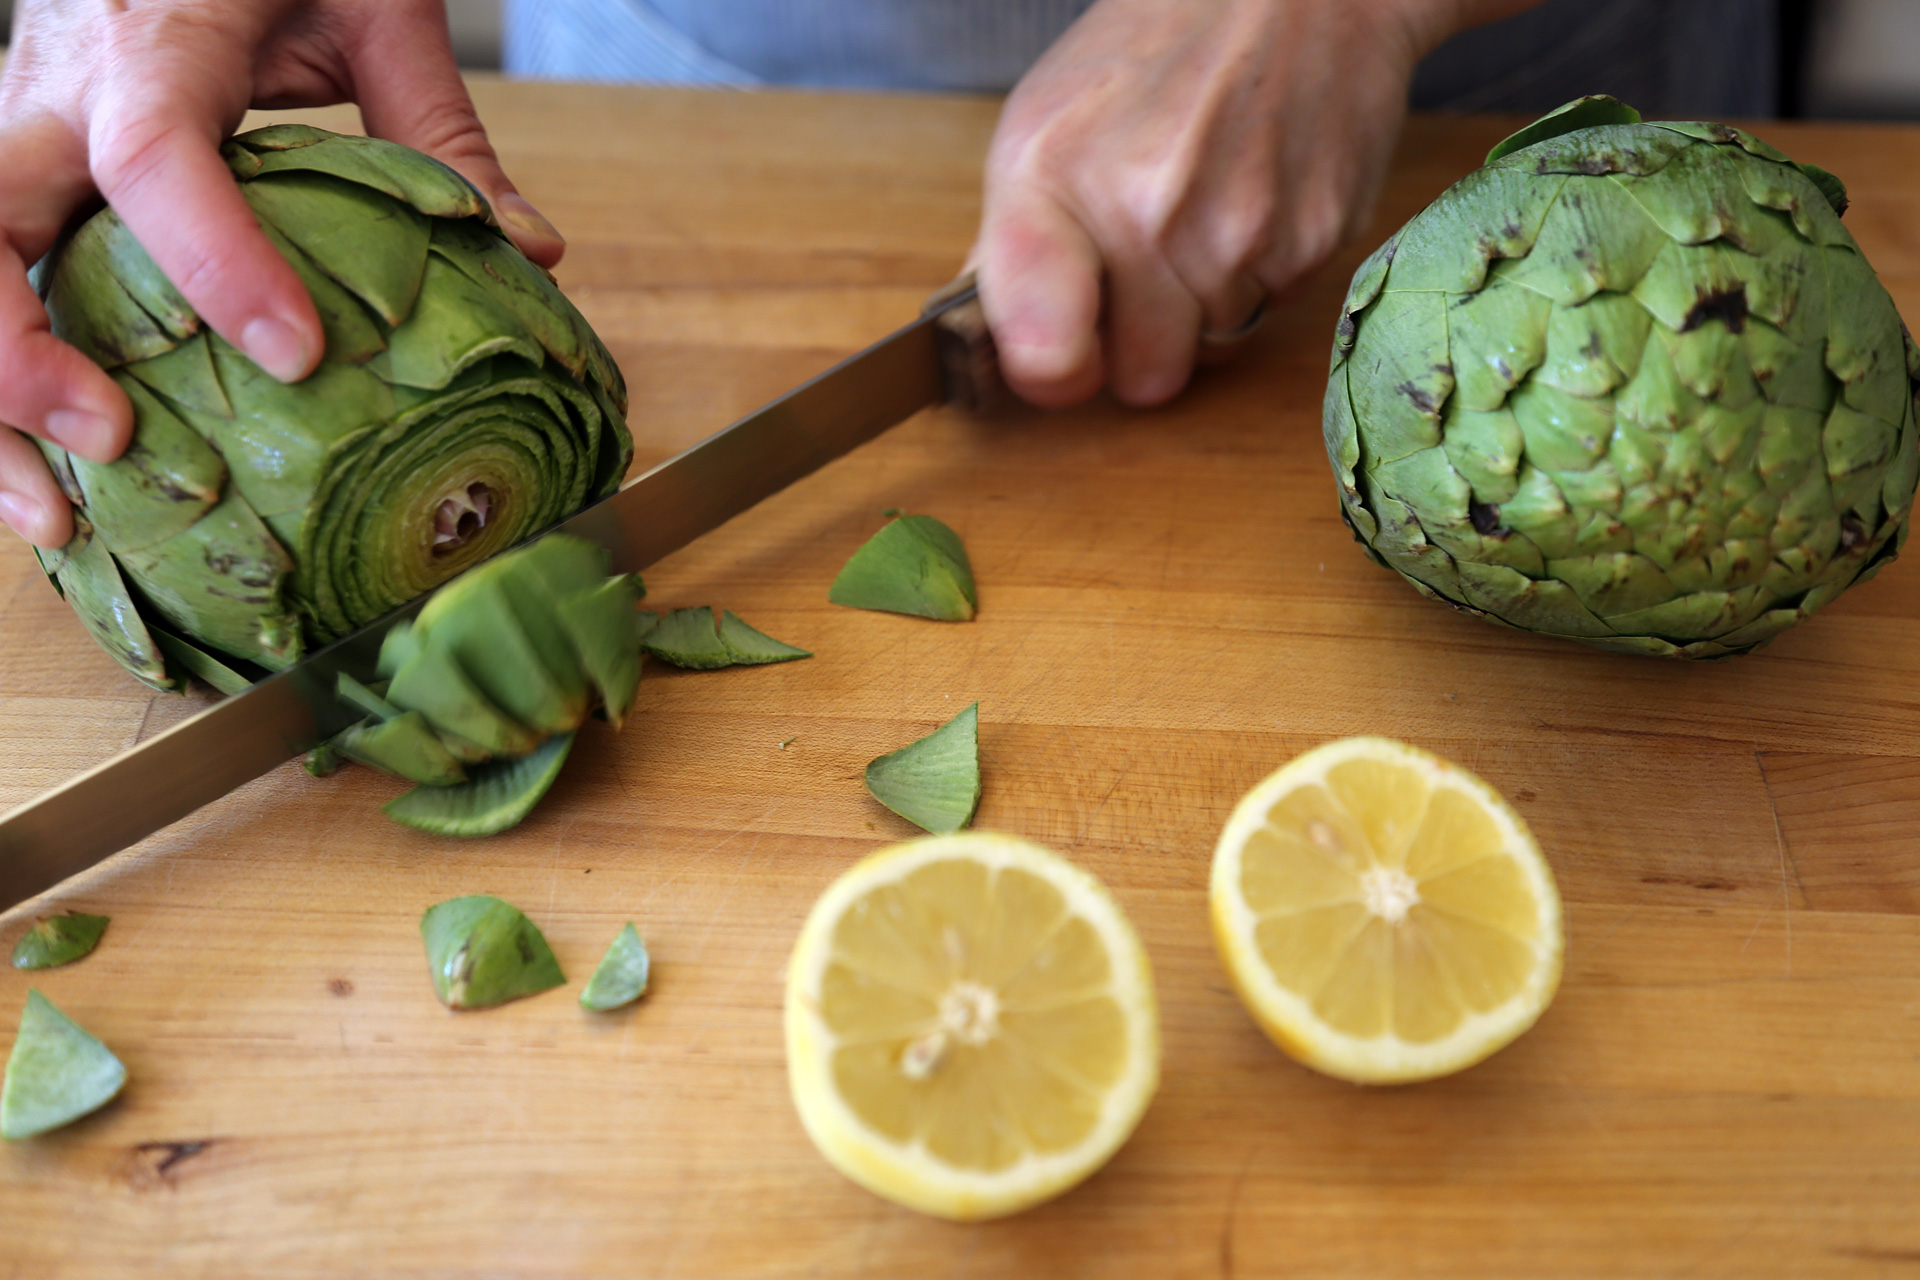 To prepare the artichokes, using a serrated knife, cut off the top 1-inch of the artichoke.